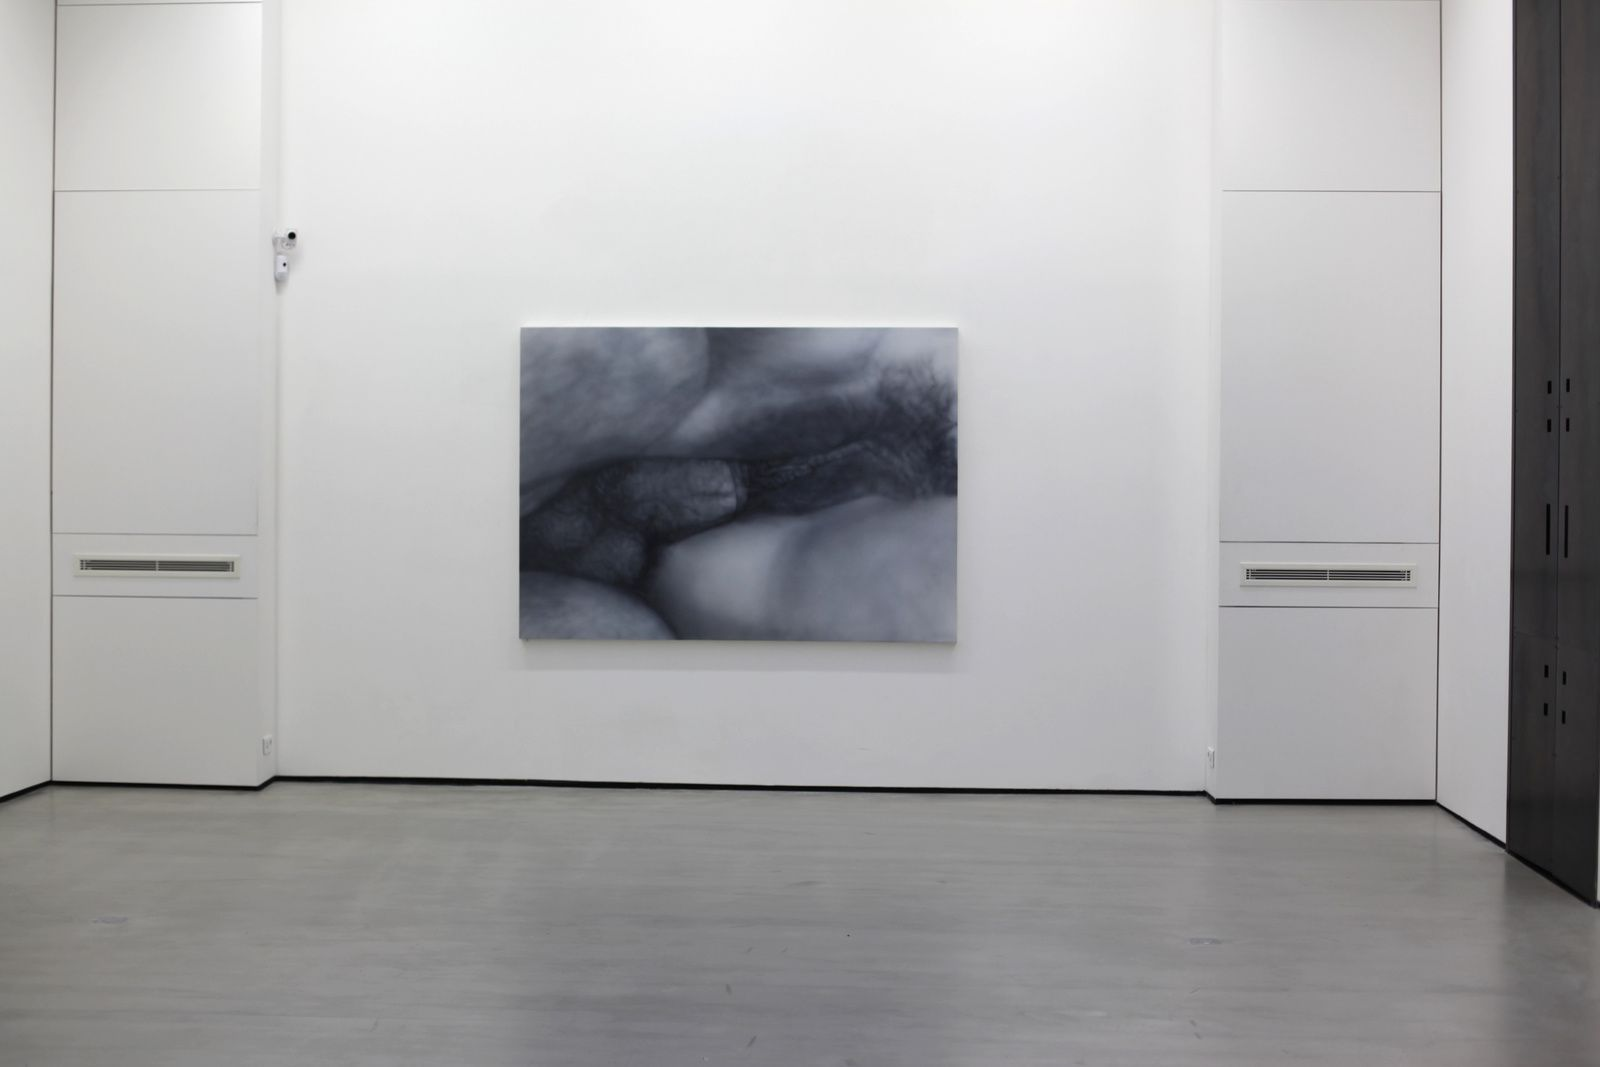 """Fuck Painting #42"", 2011 de Betty TOMPKINS - Courtesy Galerie Christophe Gaillard  Photo Éric Simon"